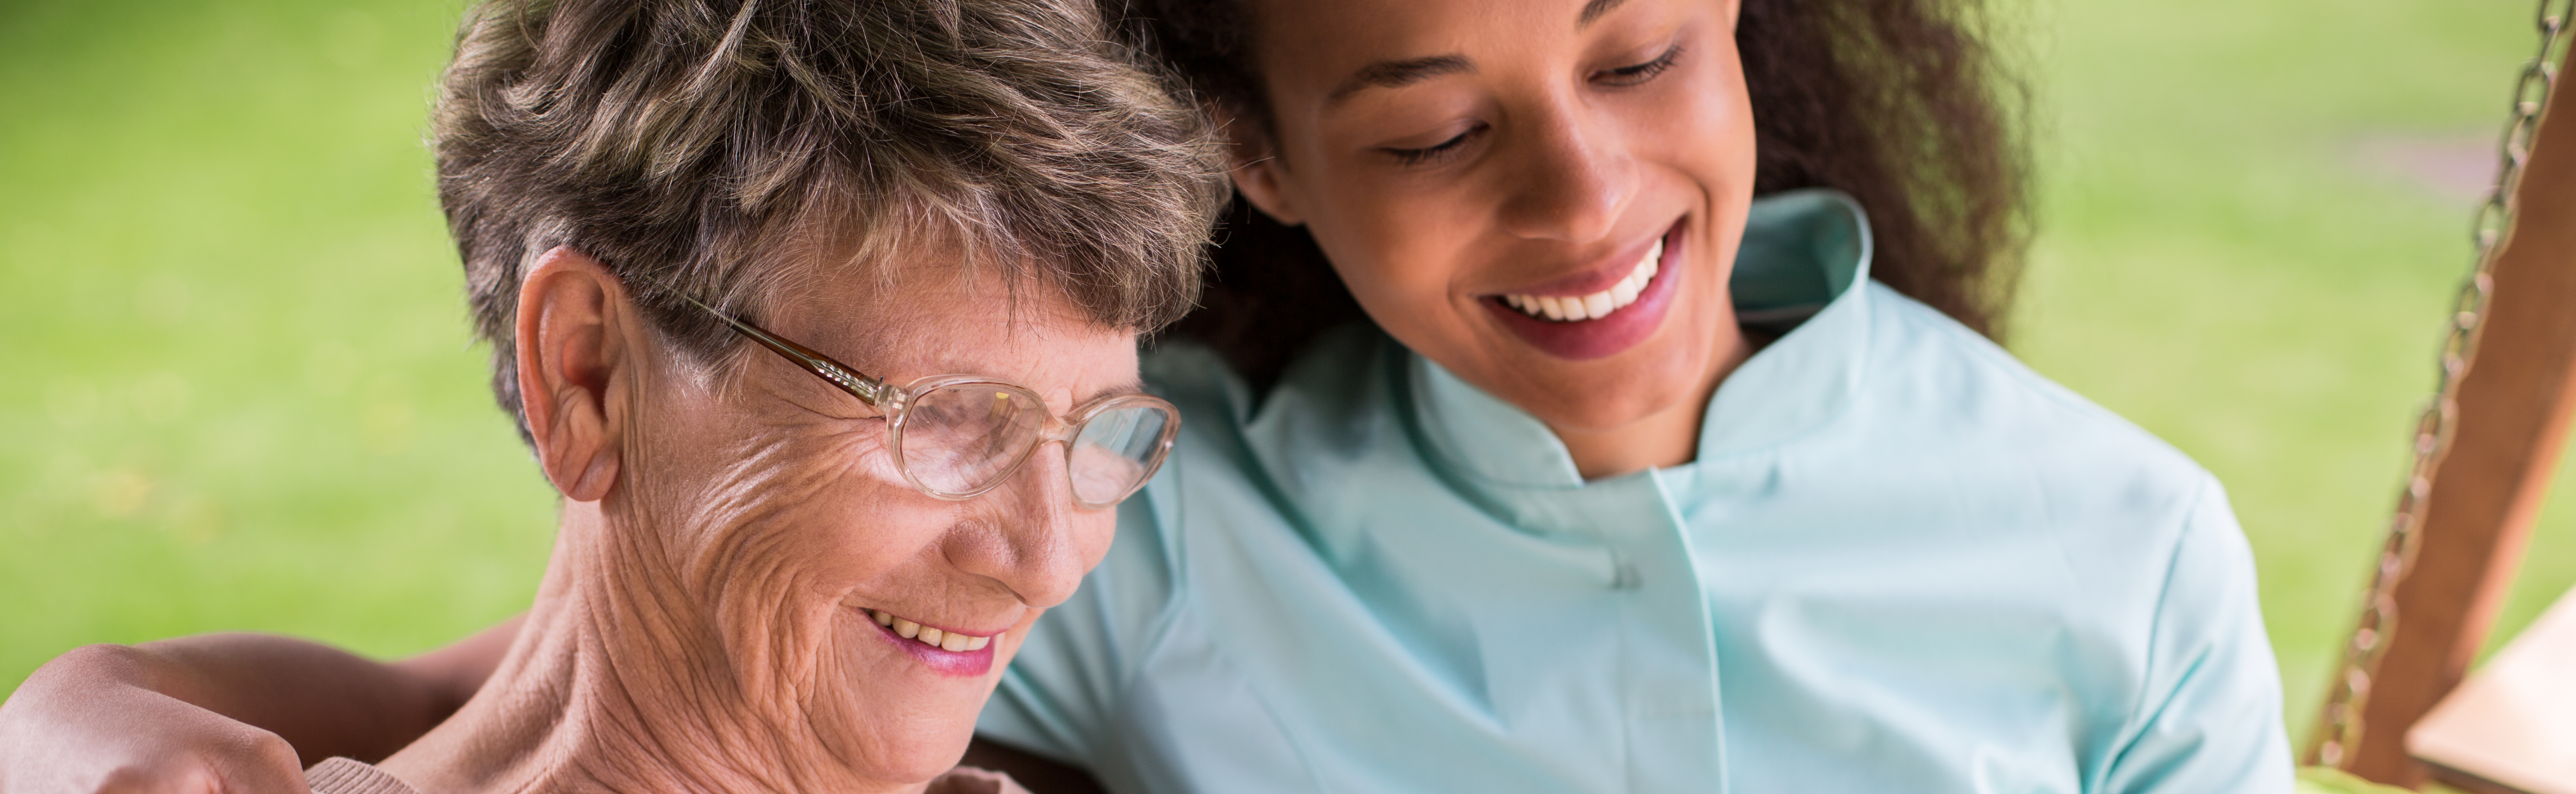 Home Care for Seniors by United Methodist Communities HomeWorks